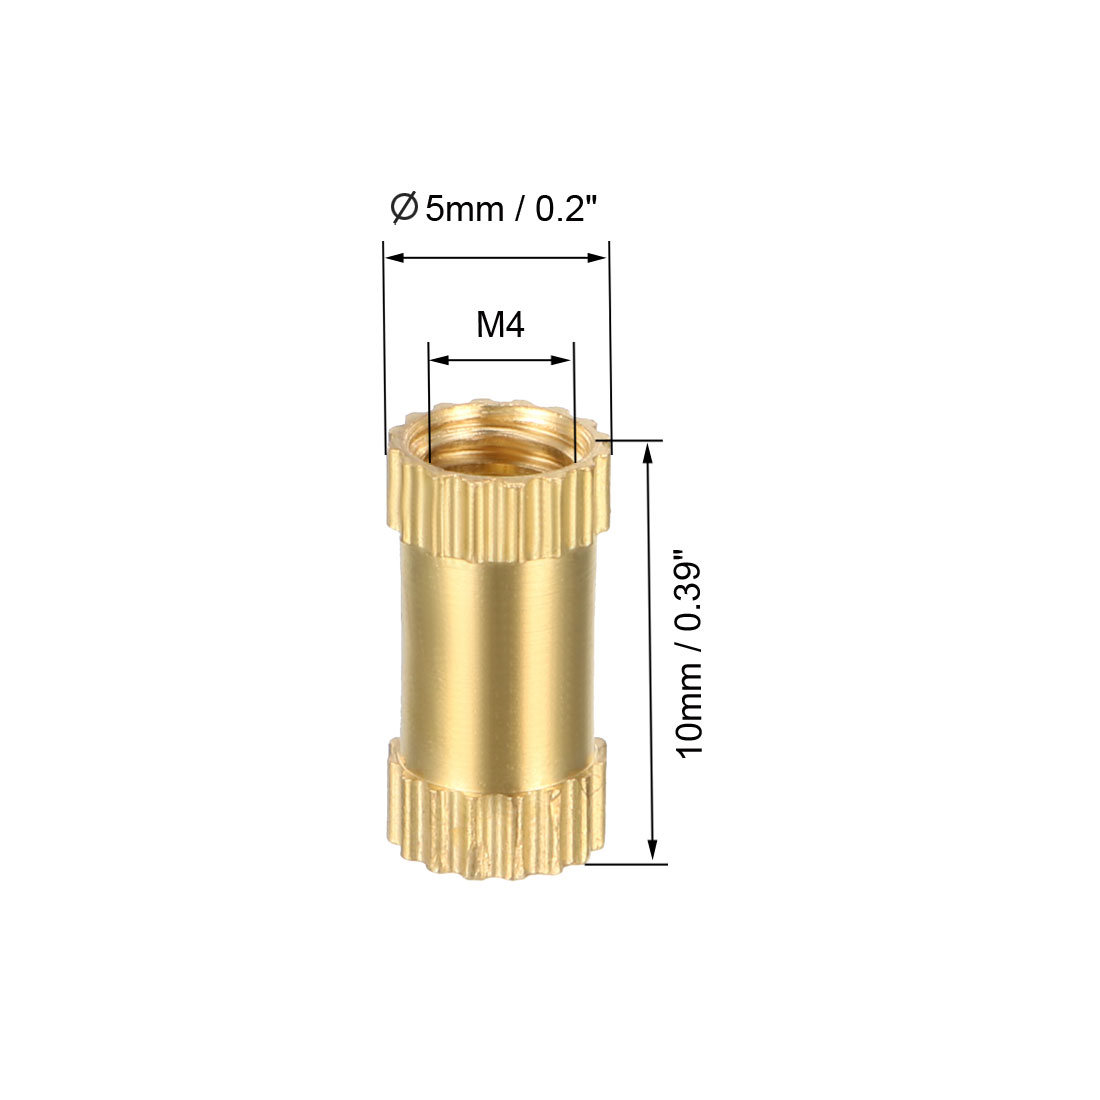 M4 x 10mm(L) x 5mm(OD) Brass Knurled Threaded Insert Embedment Nuts, 100 Pcs - image 1 de 3